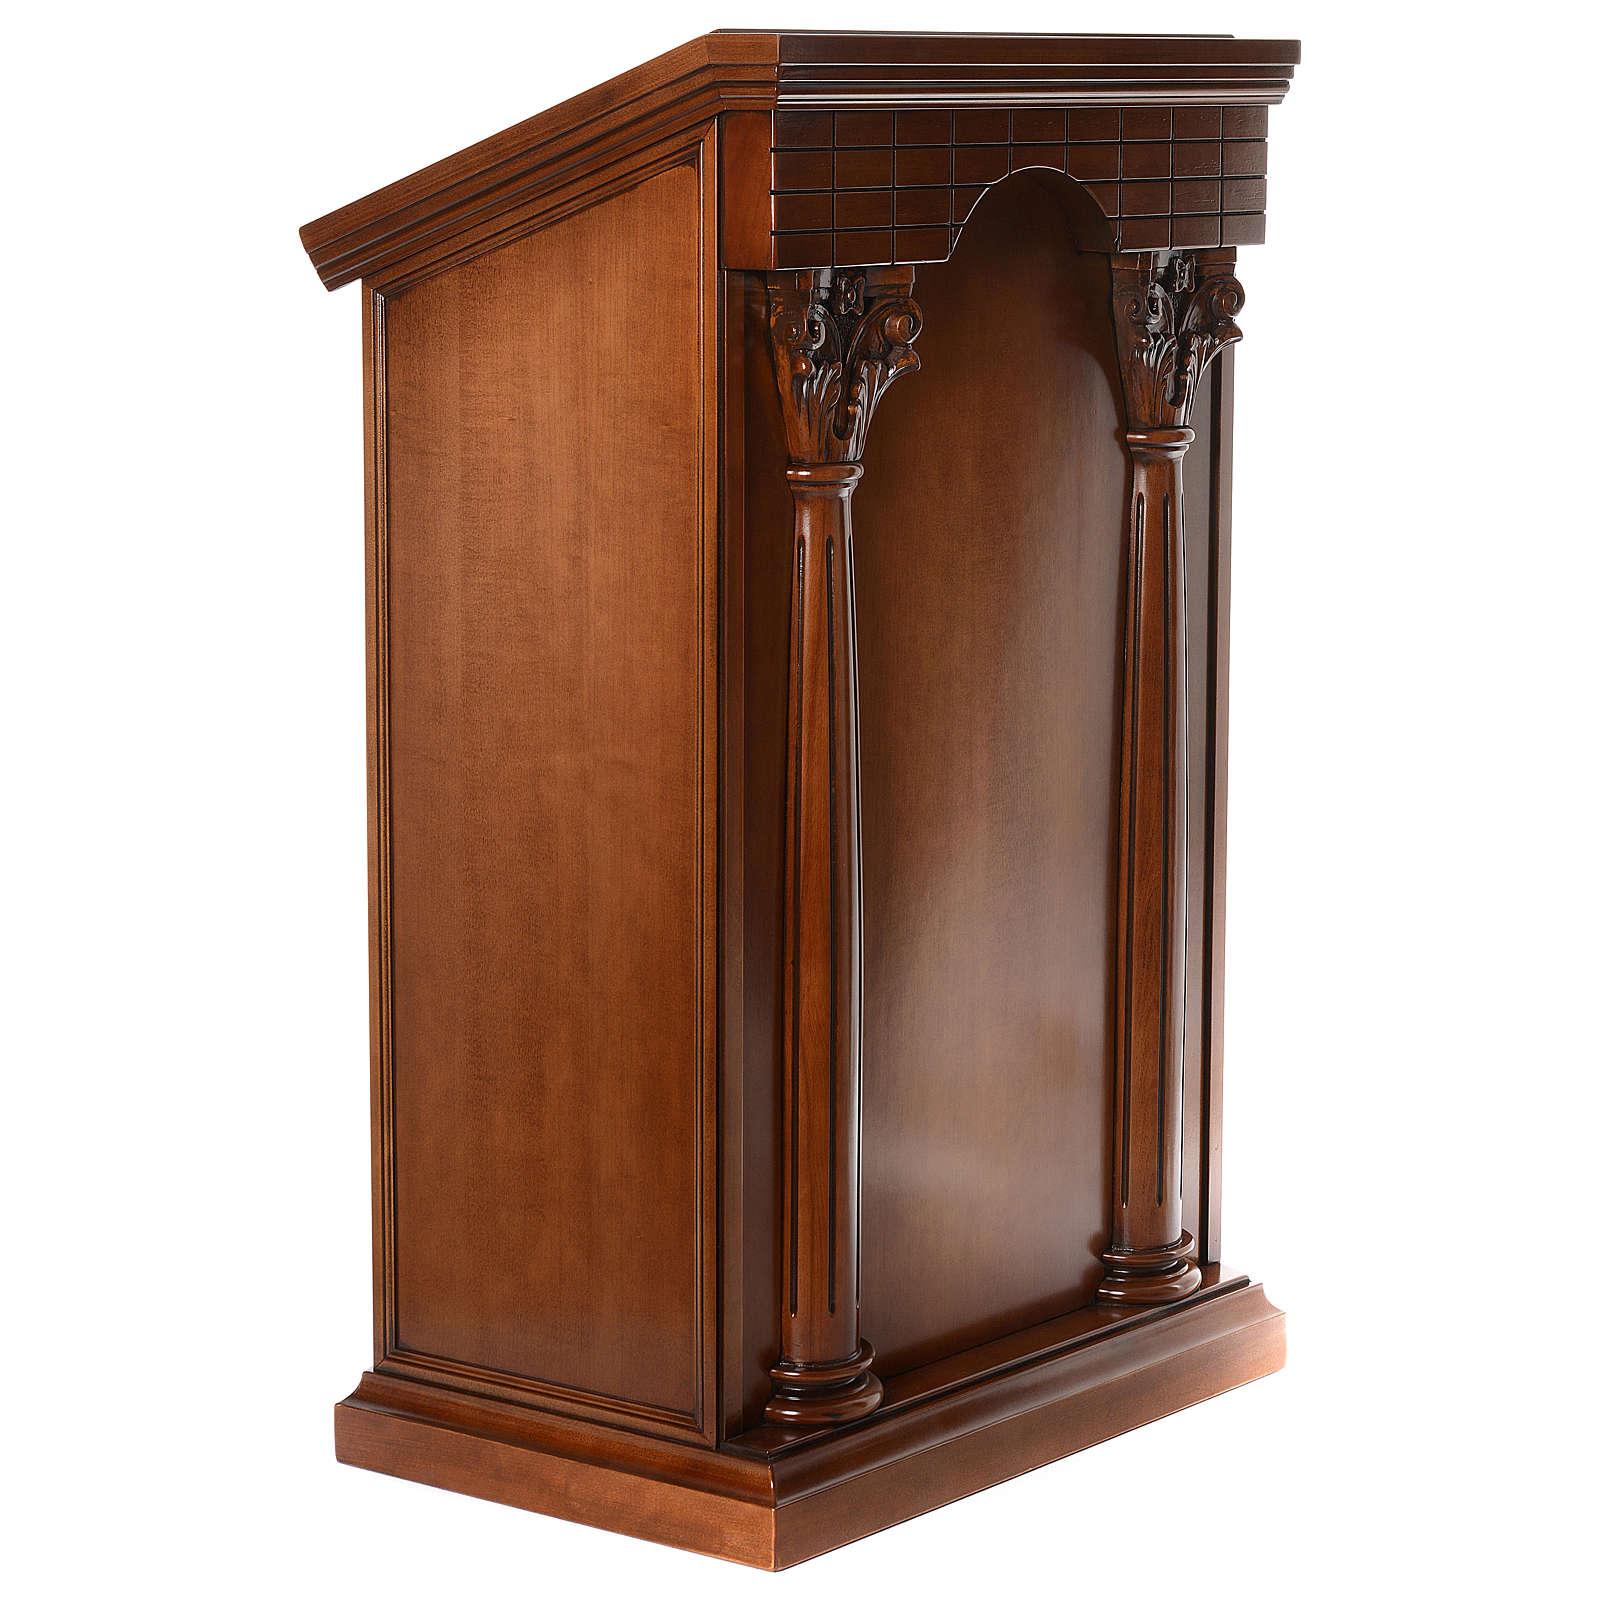 Ambo with columns made of walnut wood 4